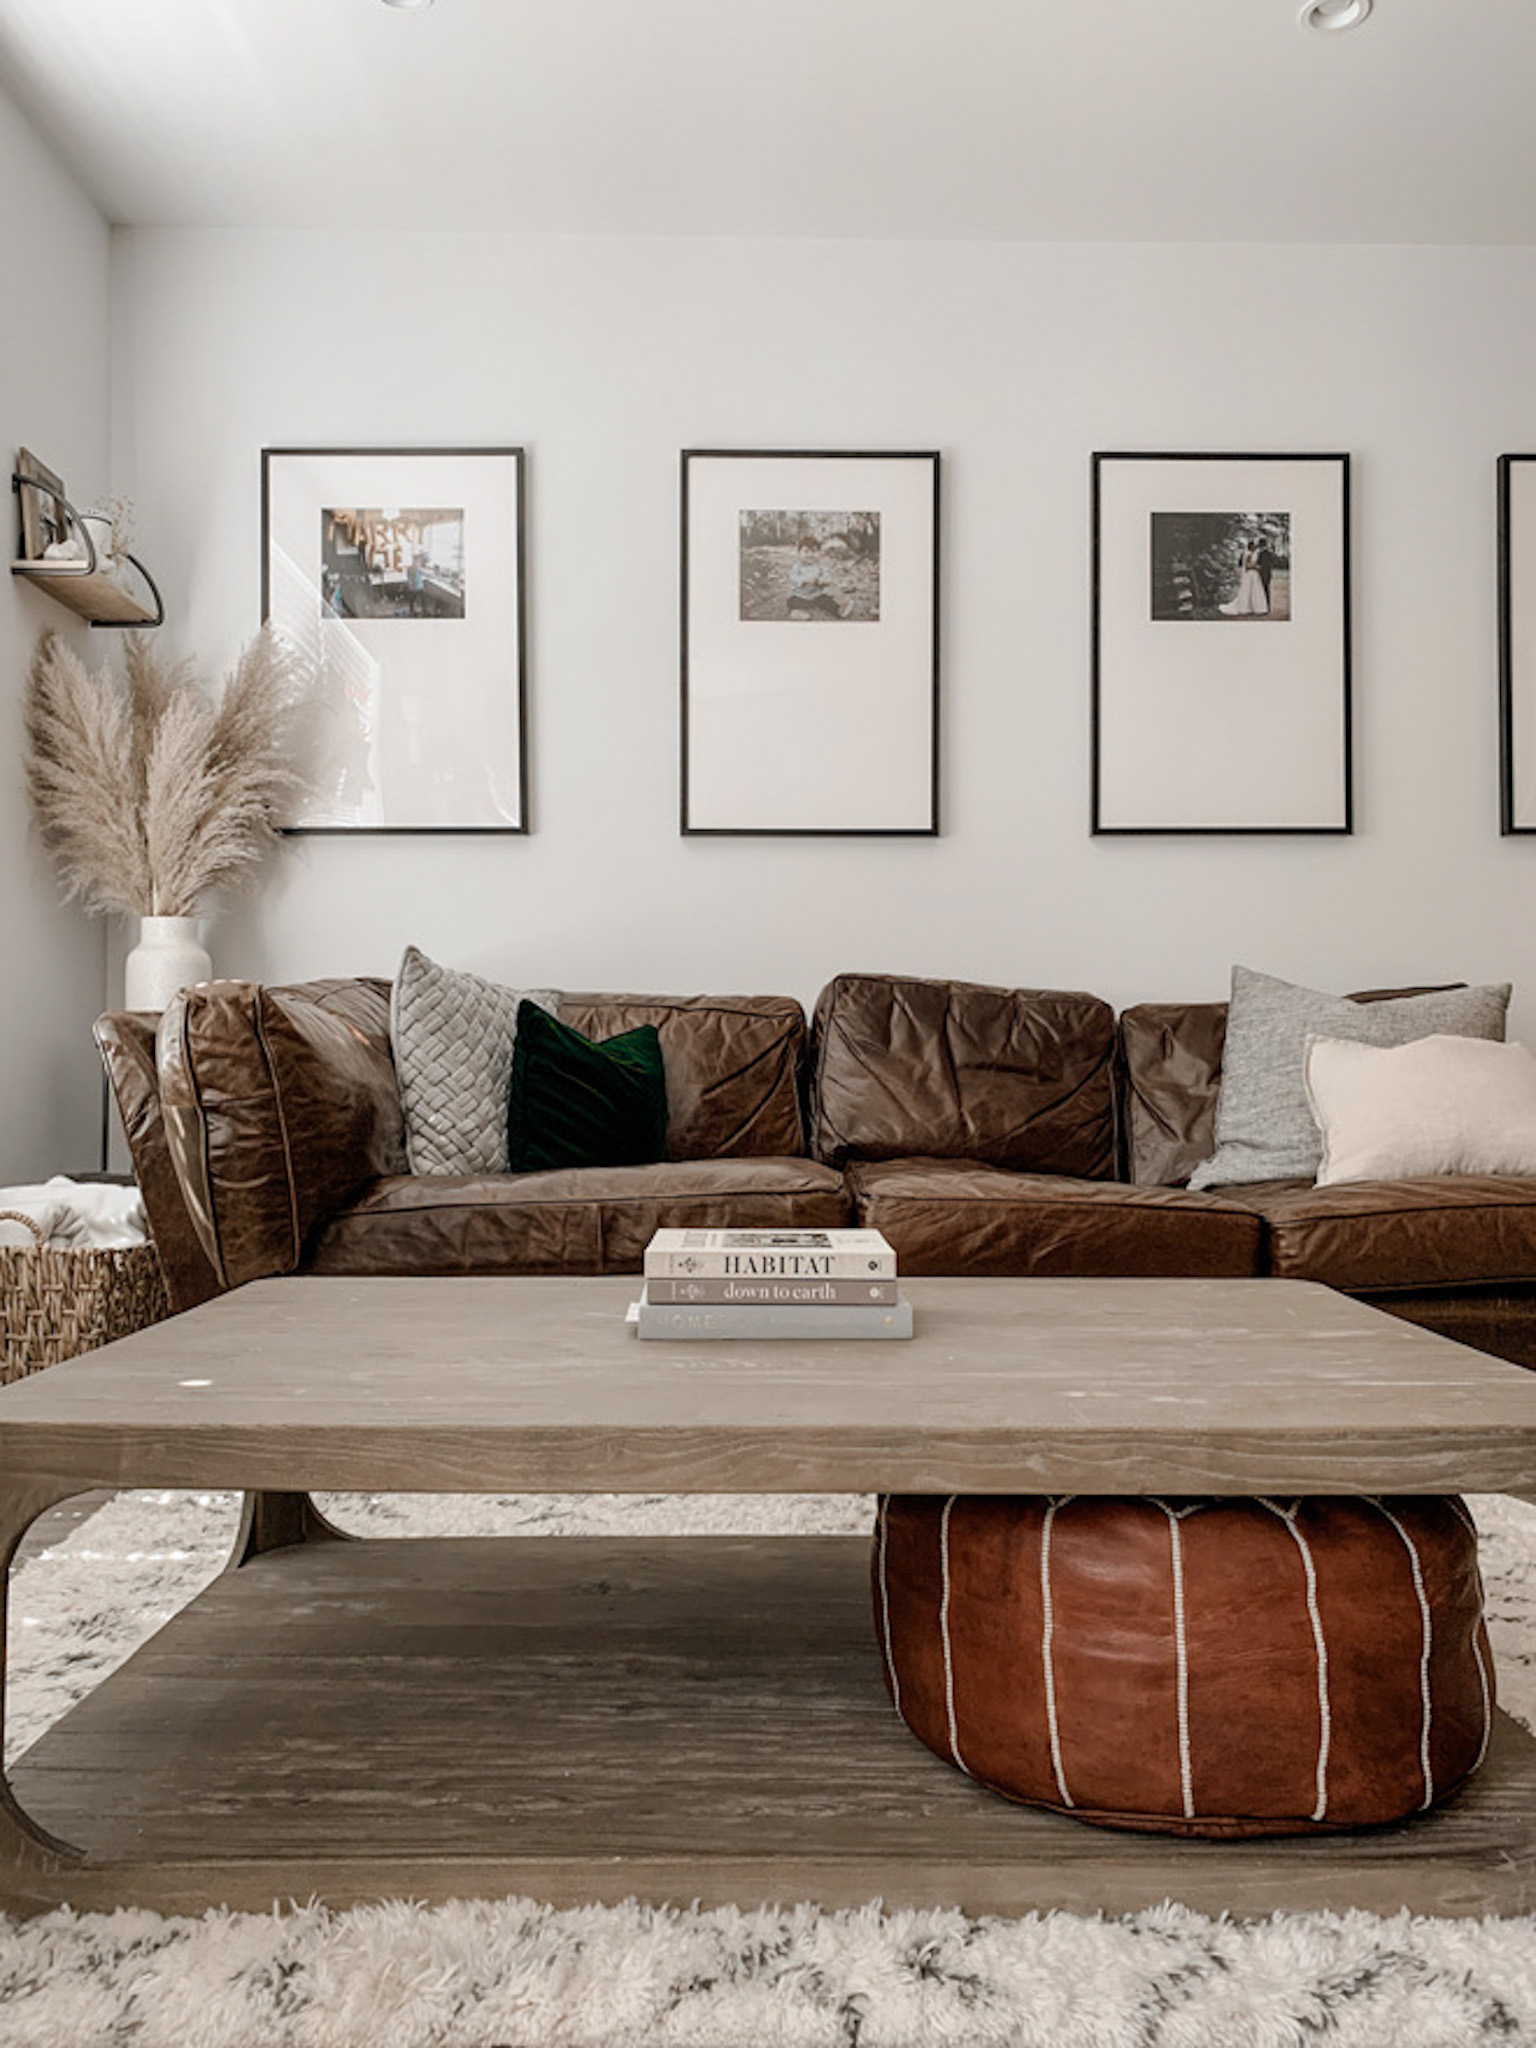 This is the most perfect minimalist, natural living room! The best part is the gallery wall with family photos. Would you believe it's a DIY?! #ikeadiy #diy #gallerywall